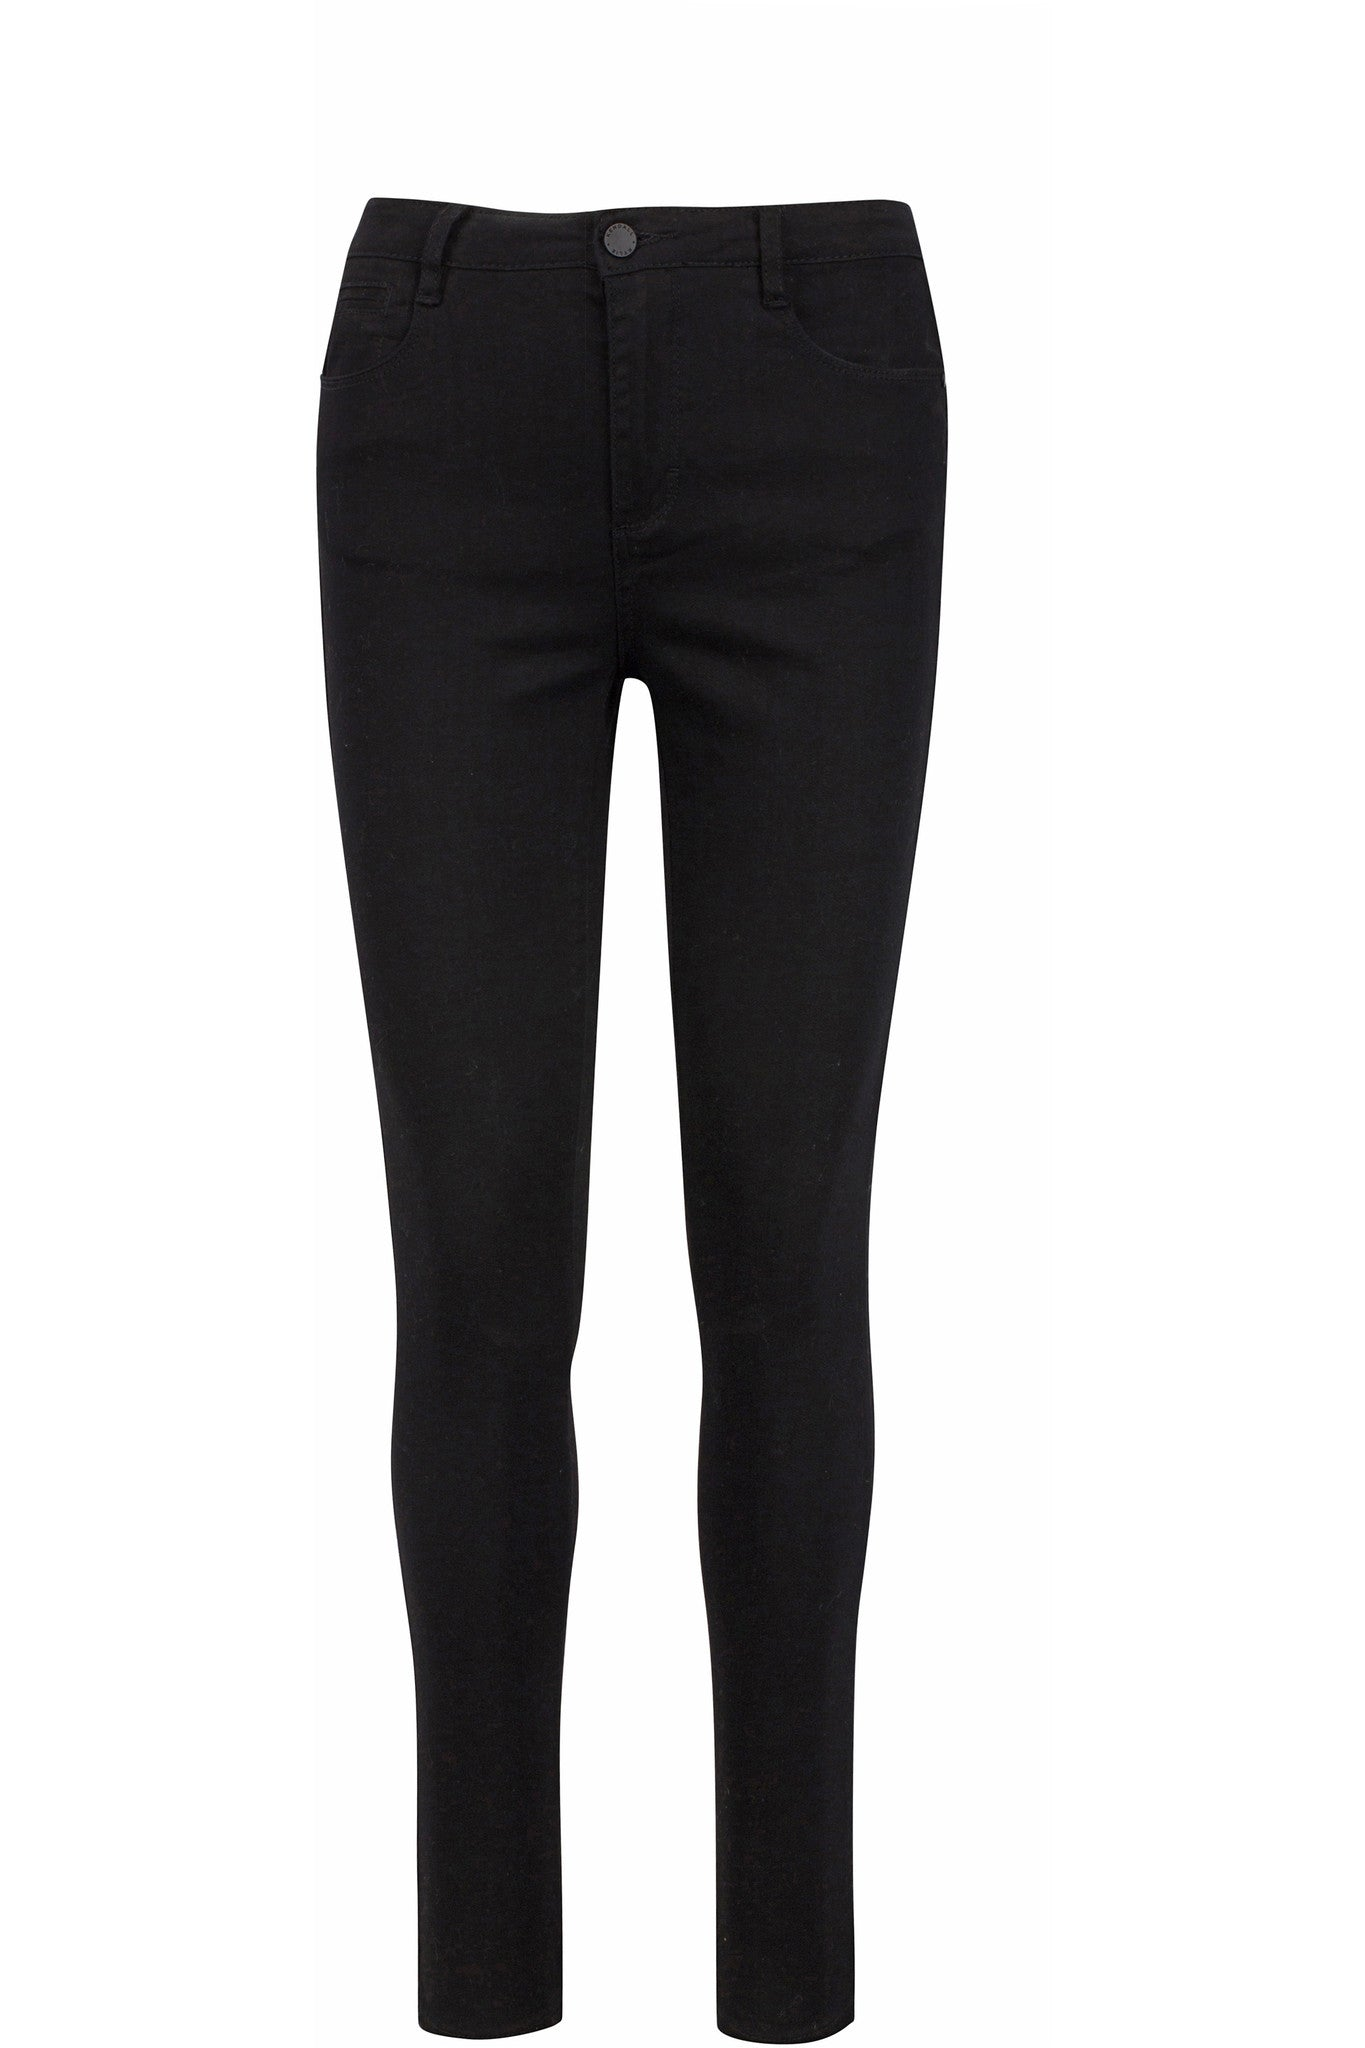 HIGH WAISTED SKINNY JEAN PANTS by KENDALL + KYLIE